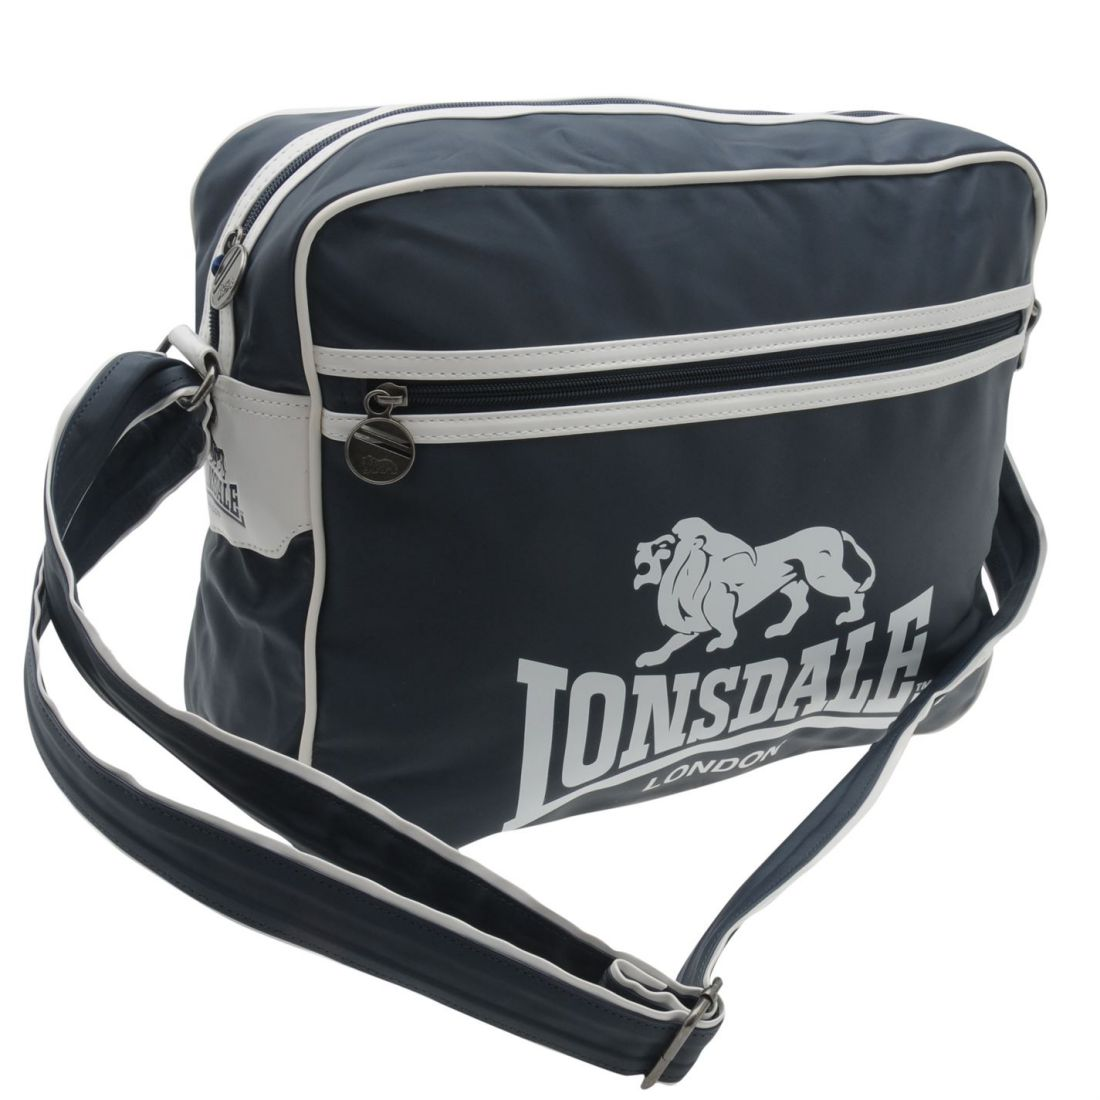 Image is loading Lonsdale-Cabin-Flight-Bag-Lightweight-Suitcase-Accessories 7e669aa5d